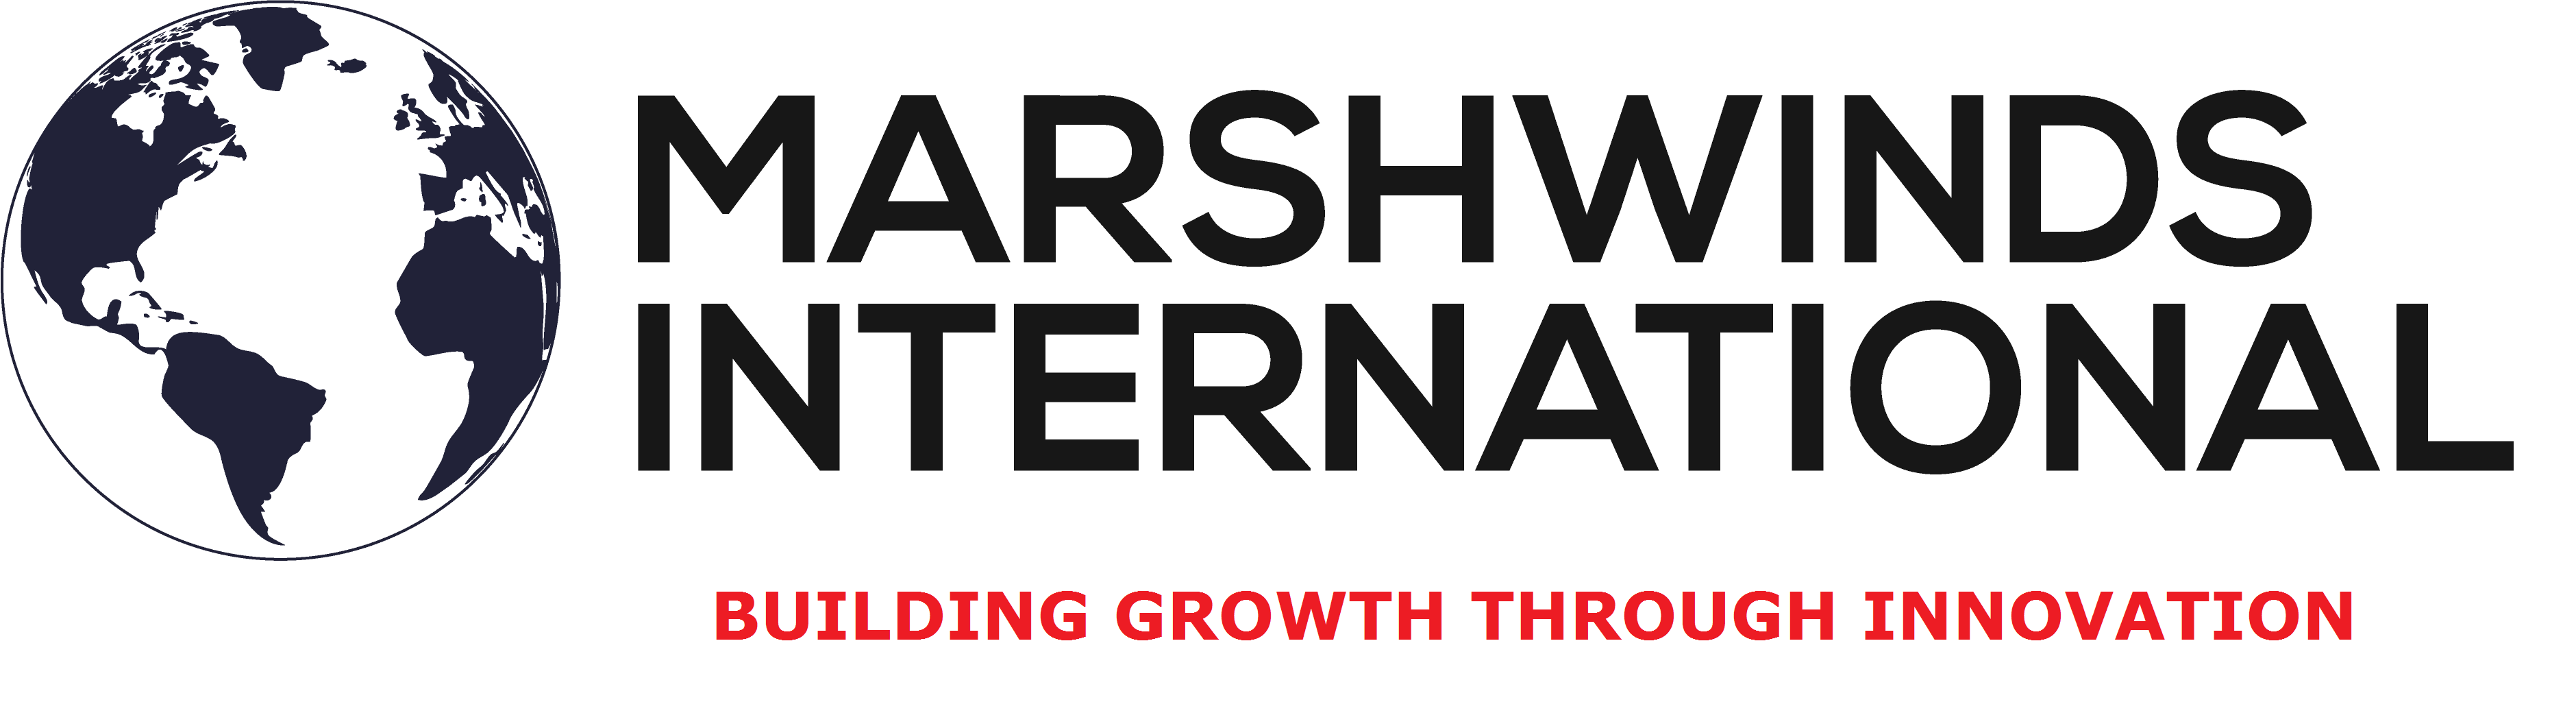 Marshwinds International